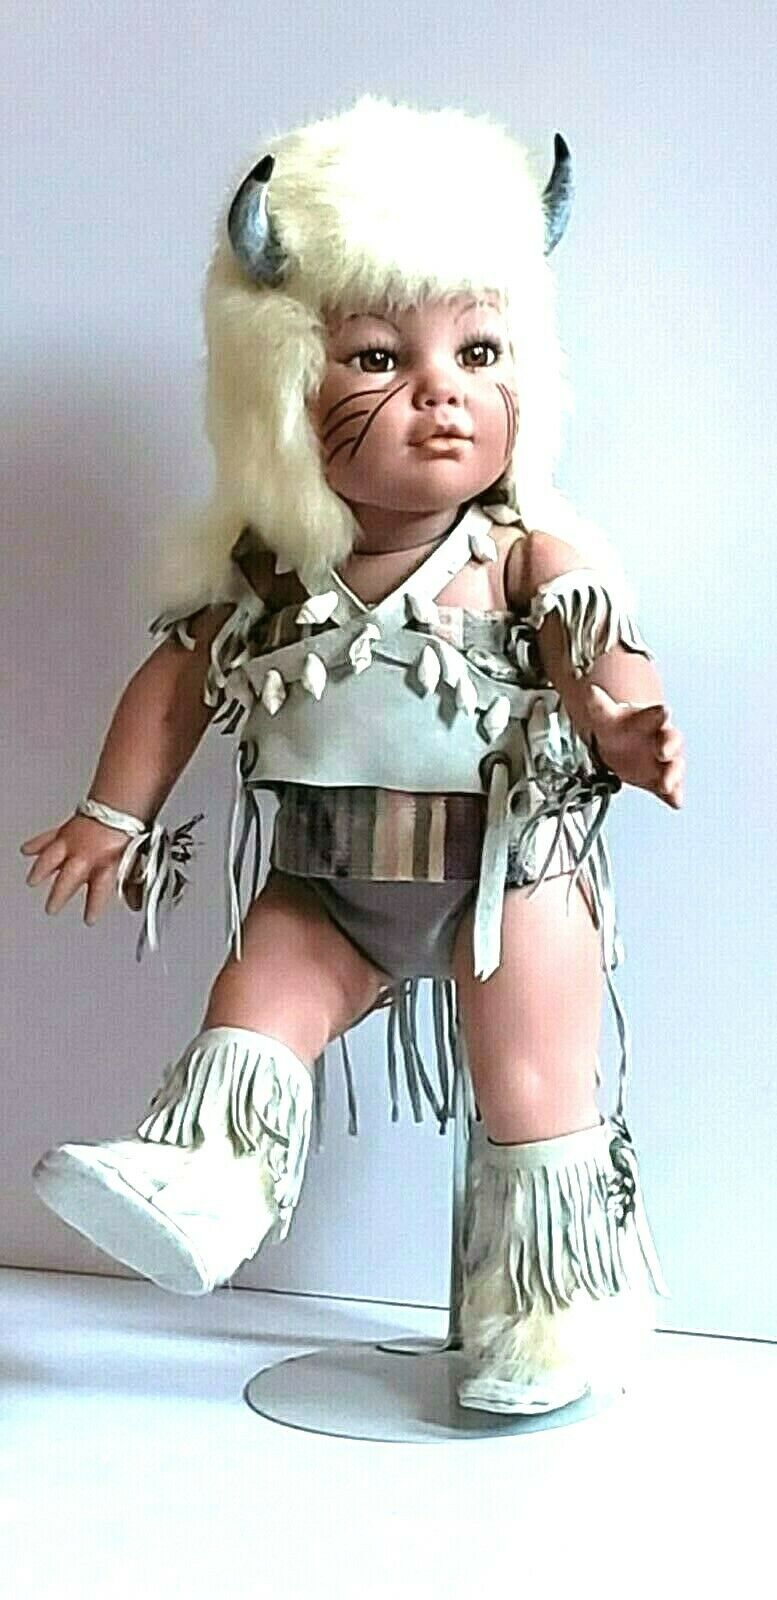 Claire-Marie Native American Buffalo HeadKleid Jointed Porcelain Doll With Stand